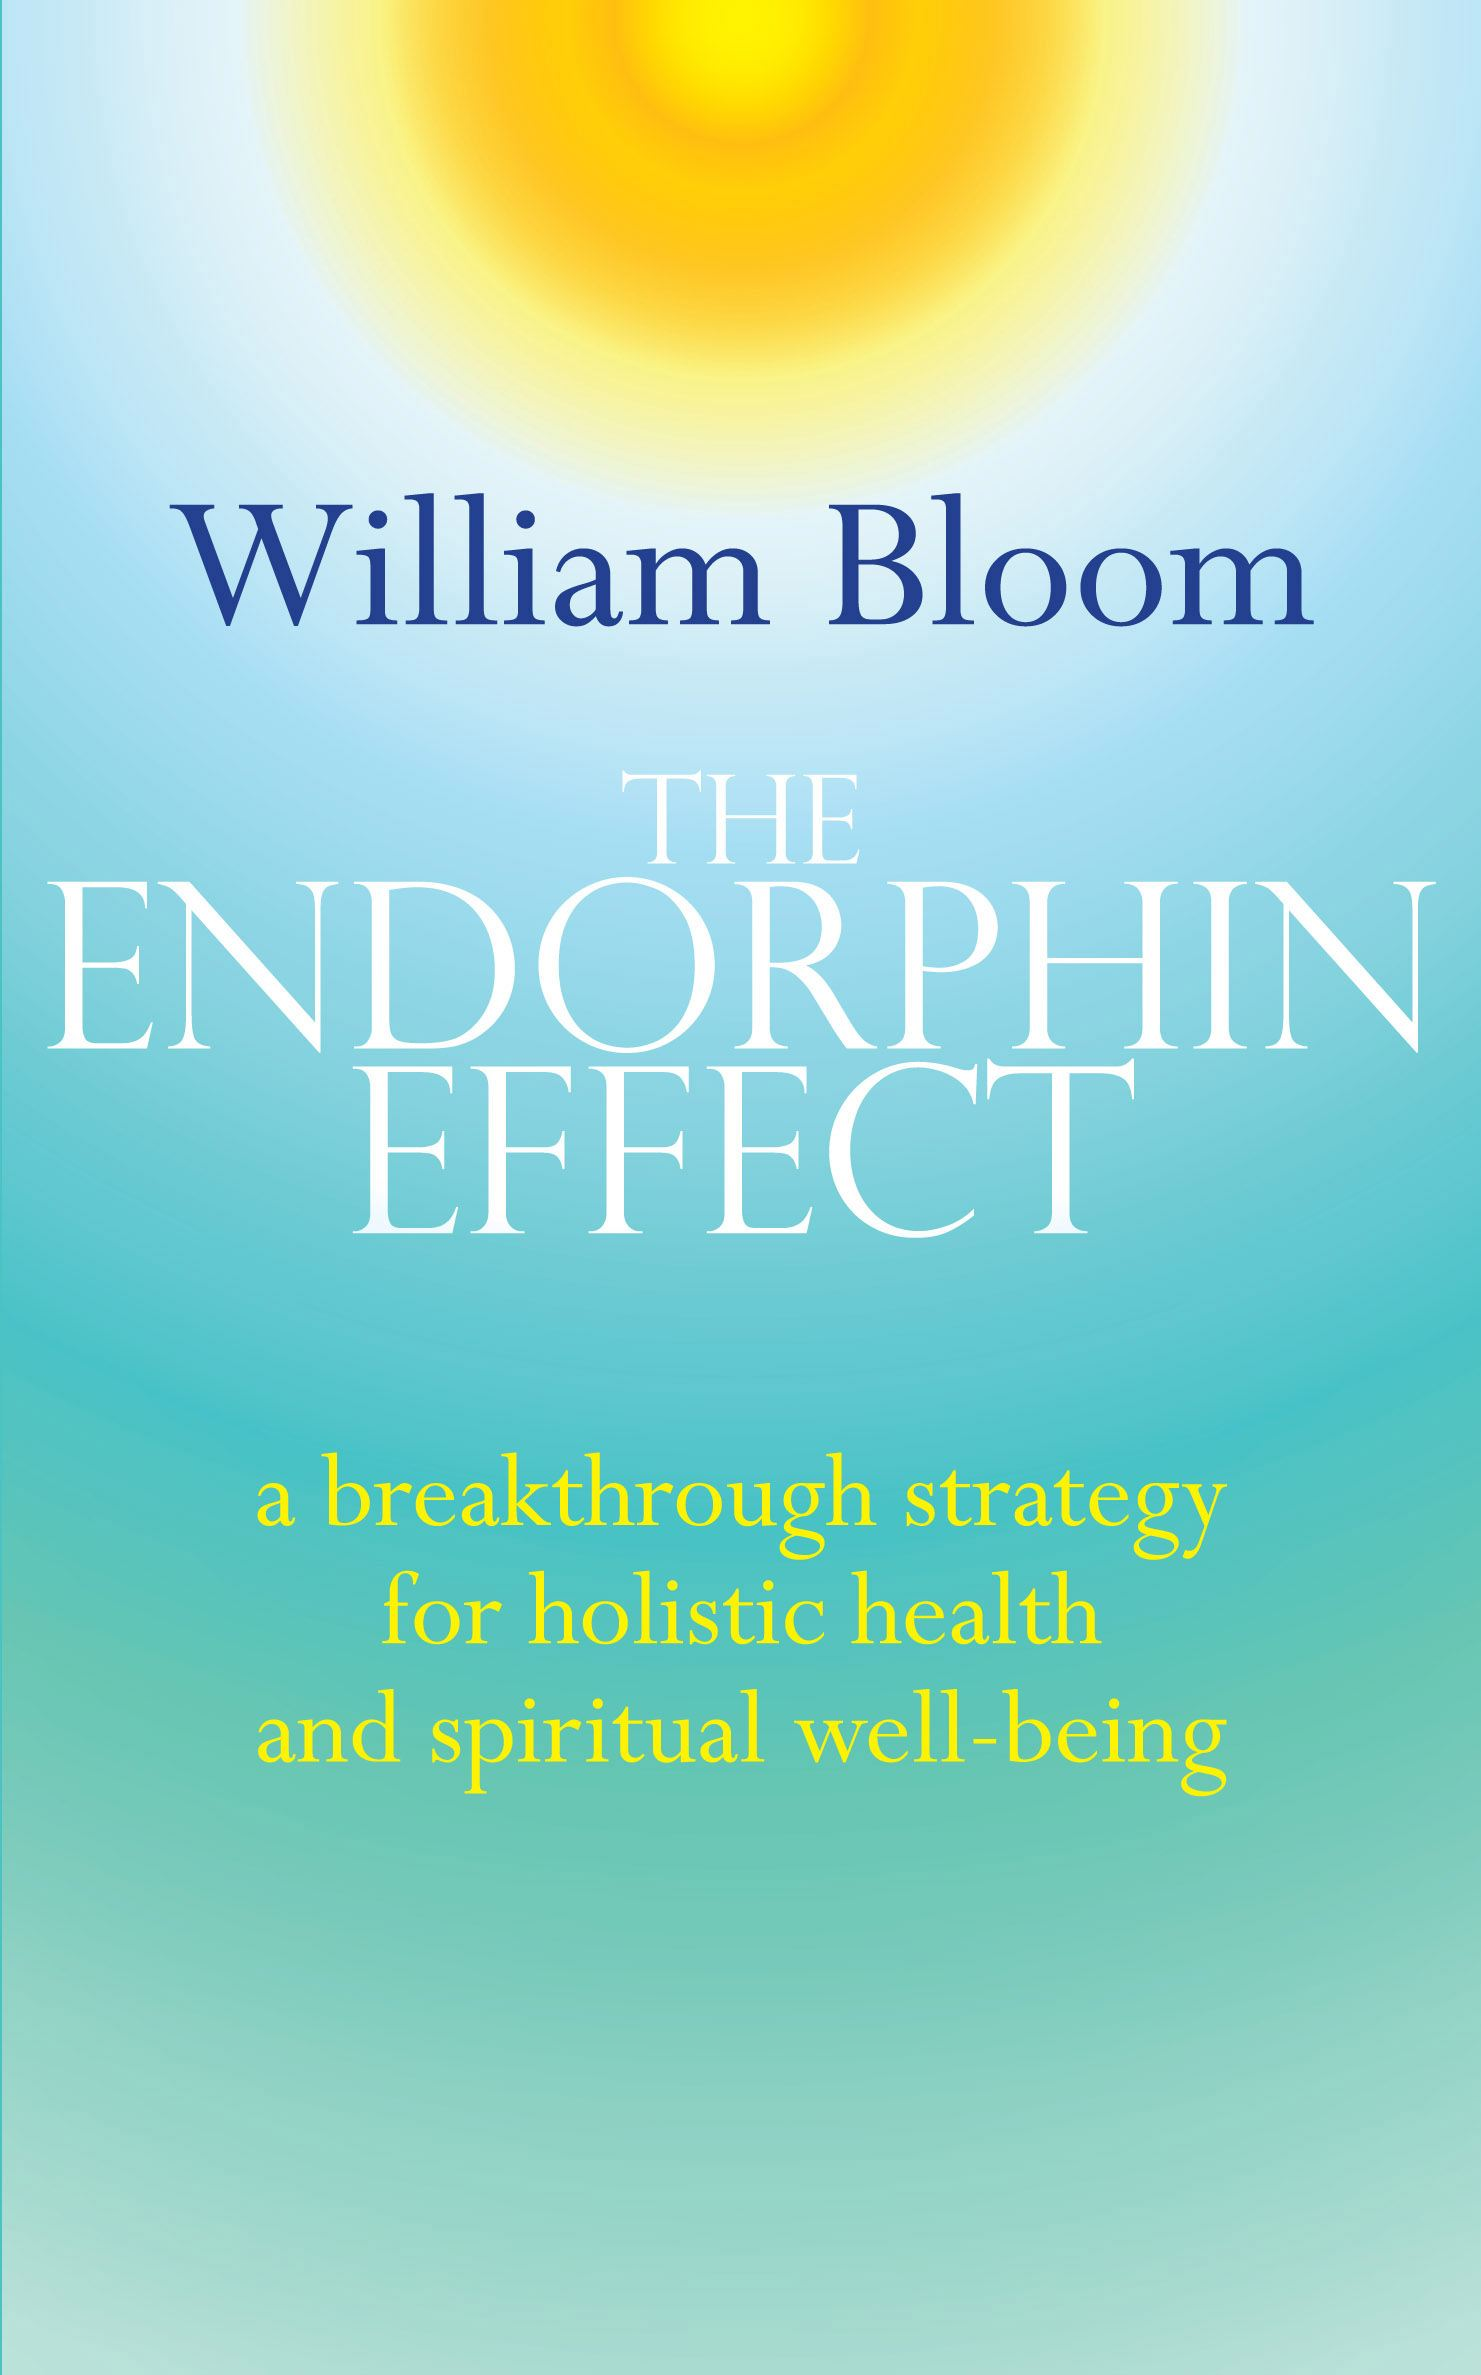 ENDORPHIN EFFECT – OVERVIEW